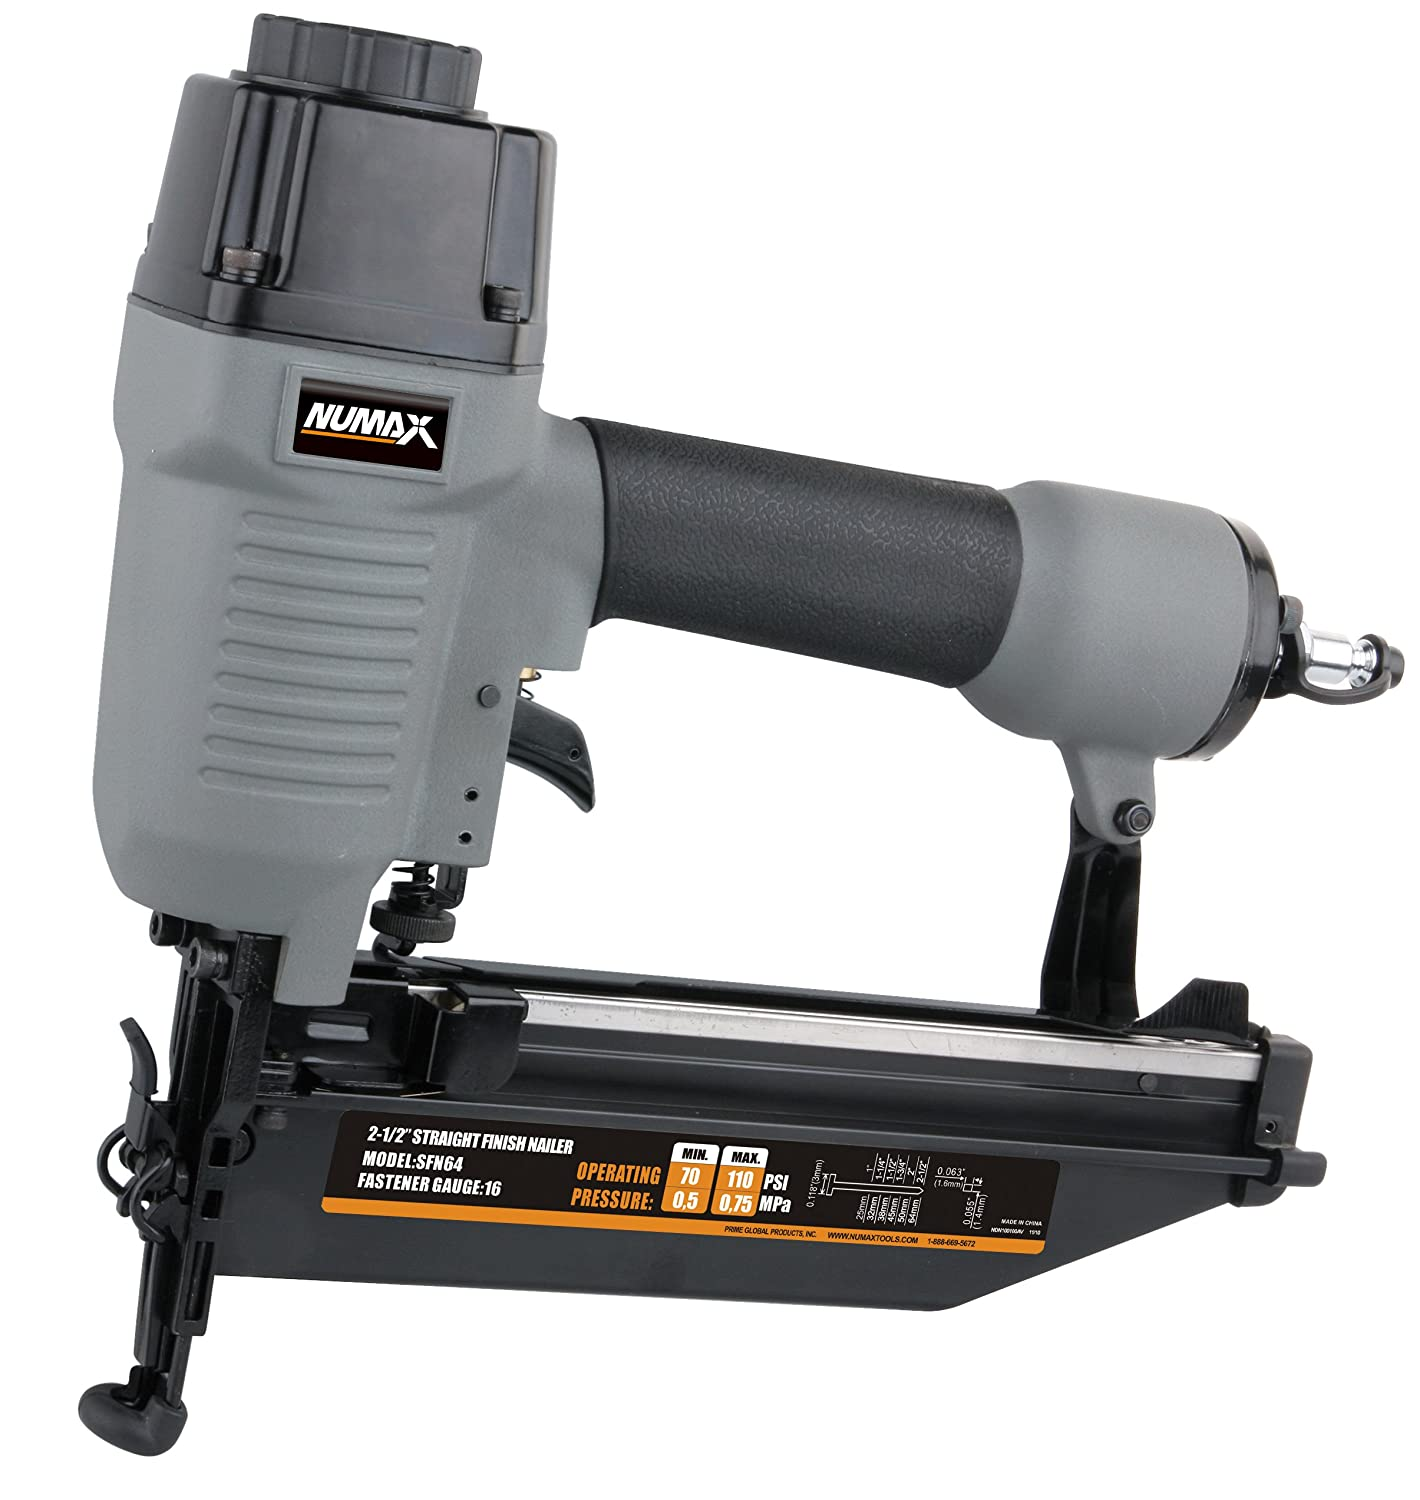 5. <strong>NuMax SFN64 Finish Nailer - Best Finish Nailer</strong>